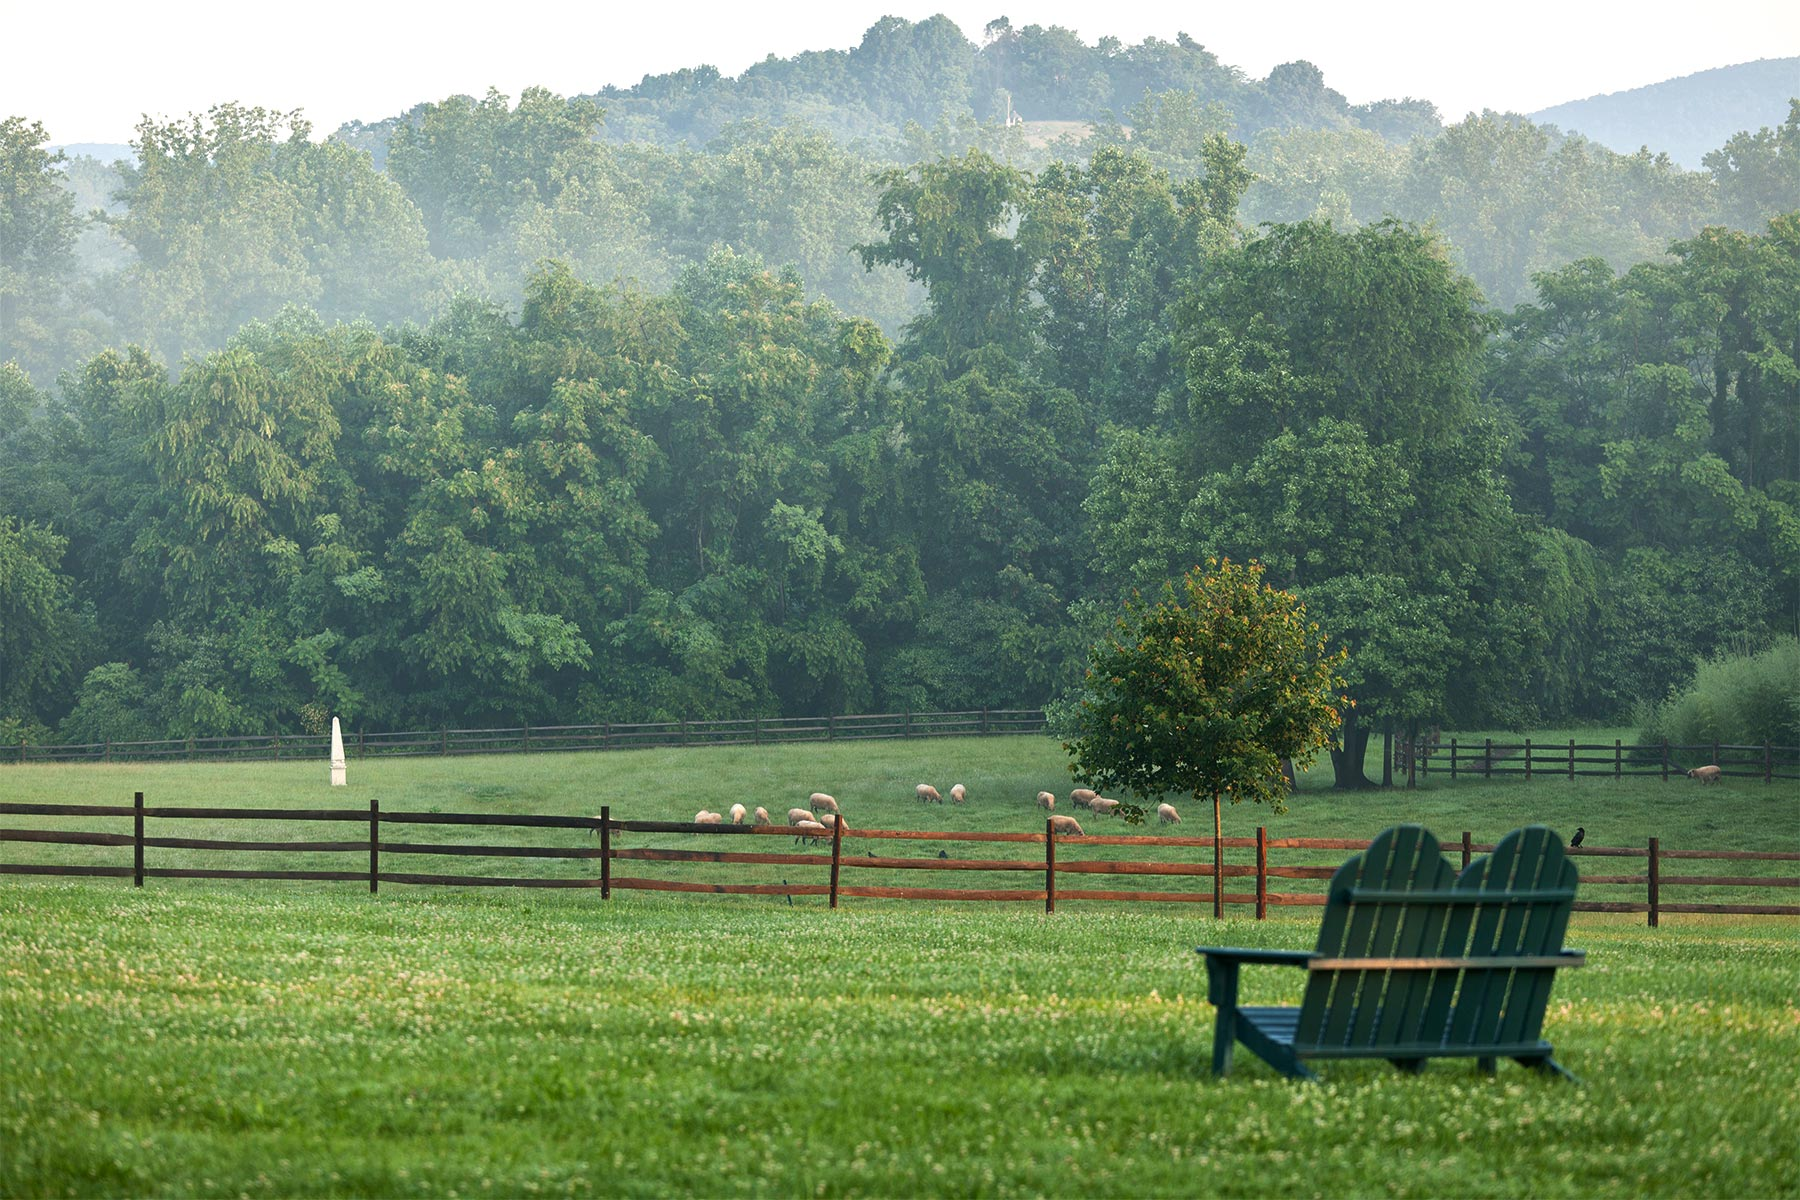 Misty mountains overlooking the field of dreams.